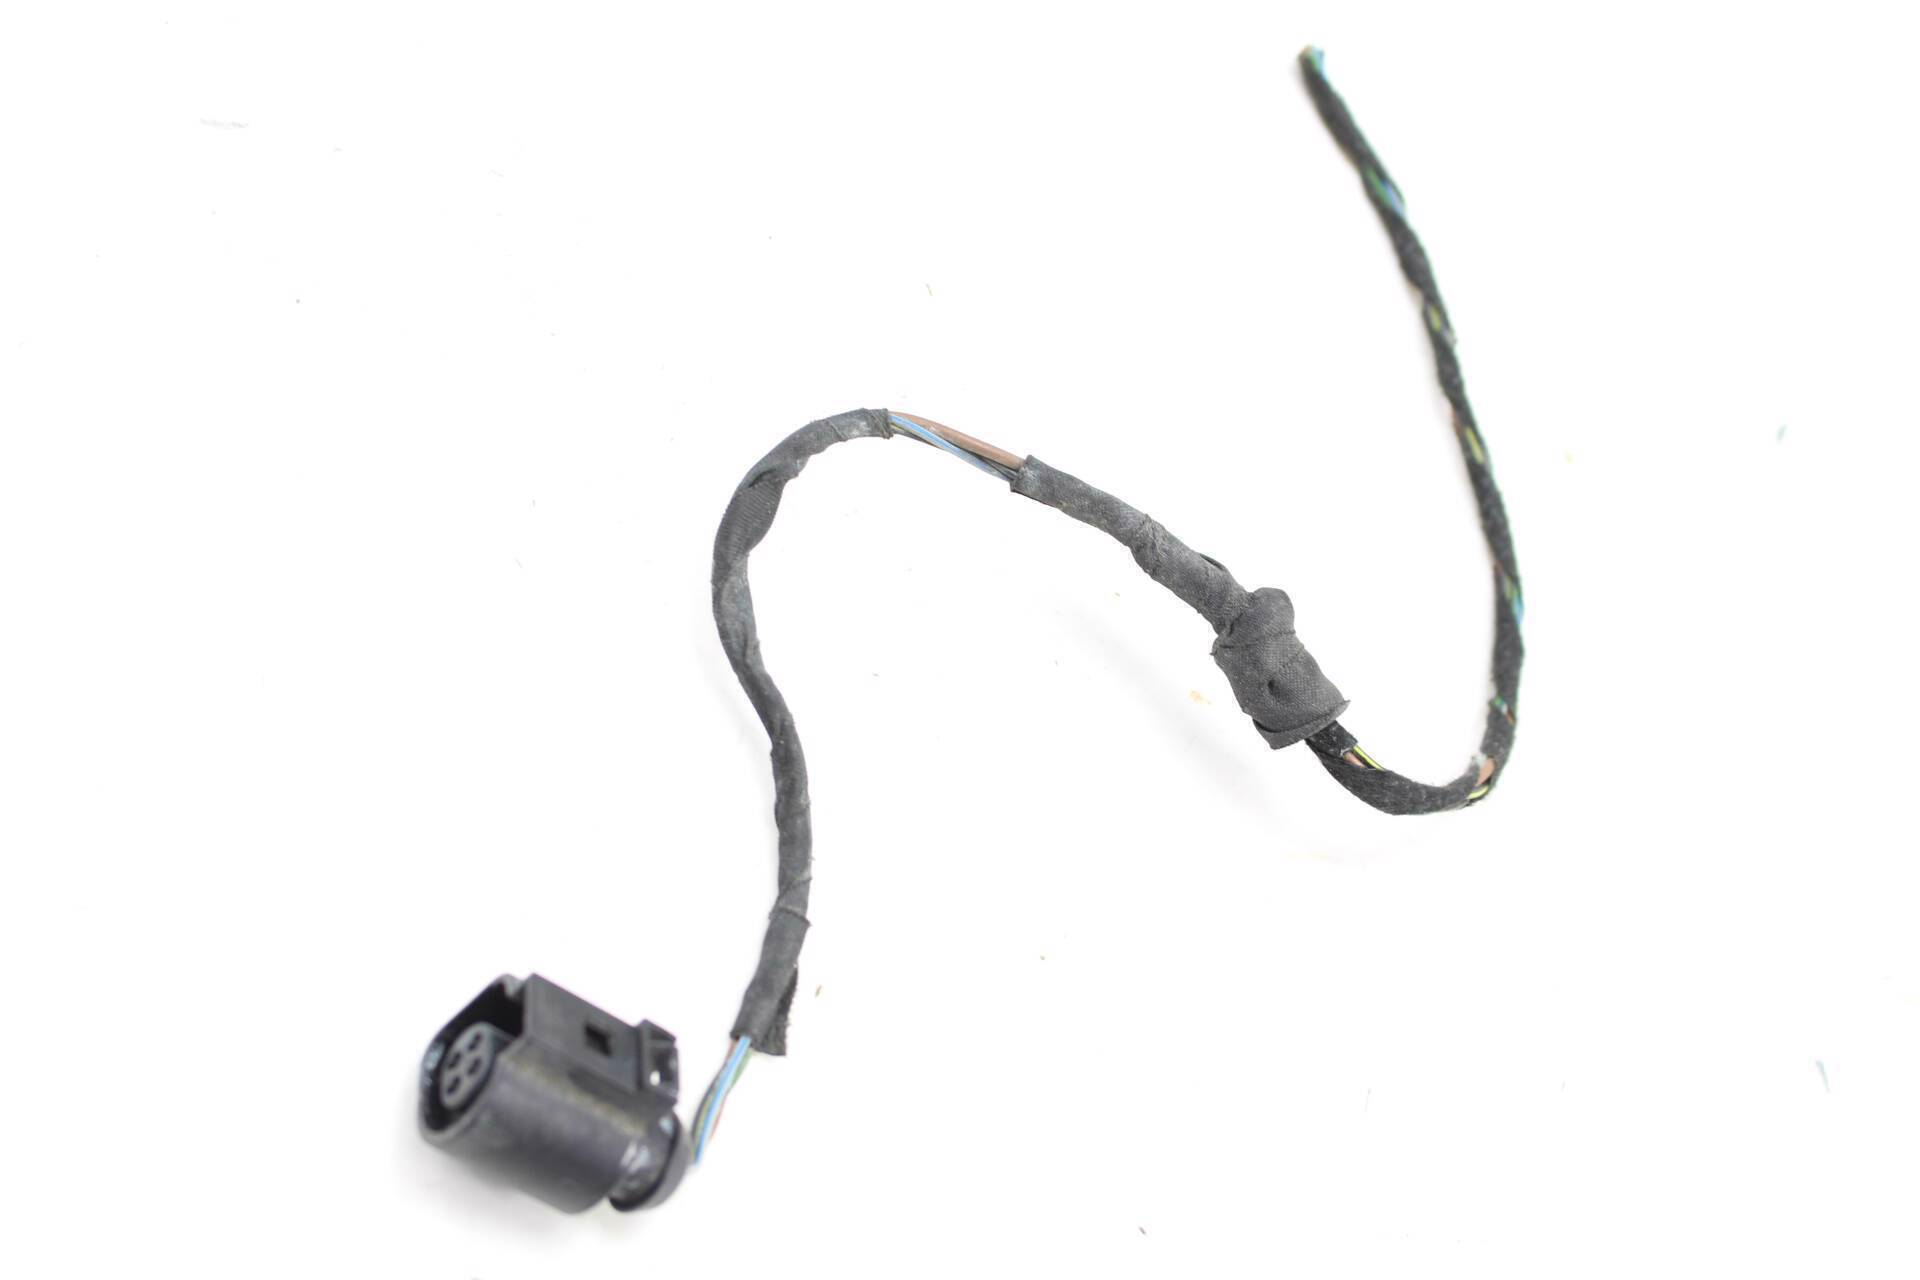 hight resolution of details about tail light lamp wiring harness connector audi a3 a4 allroad a5 a6 a7 vw cc